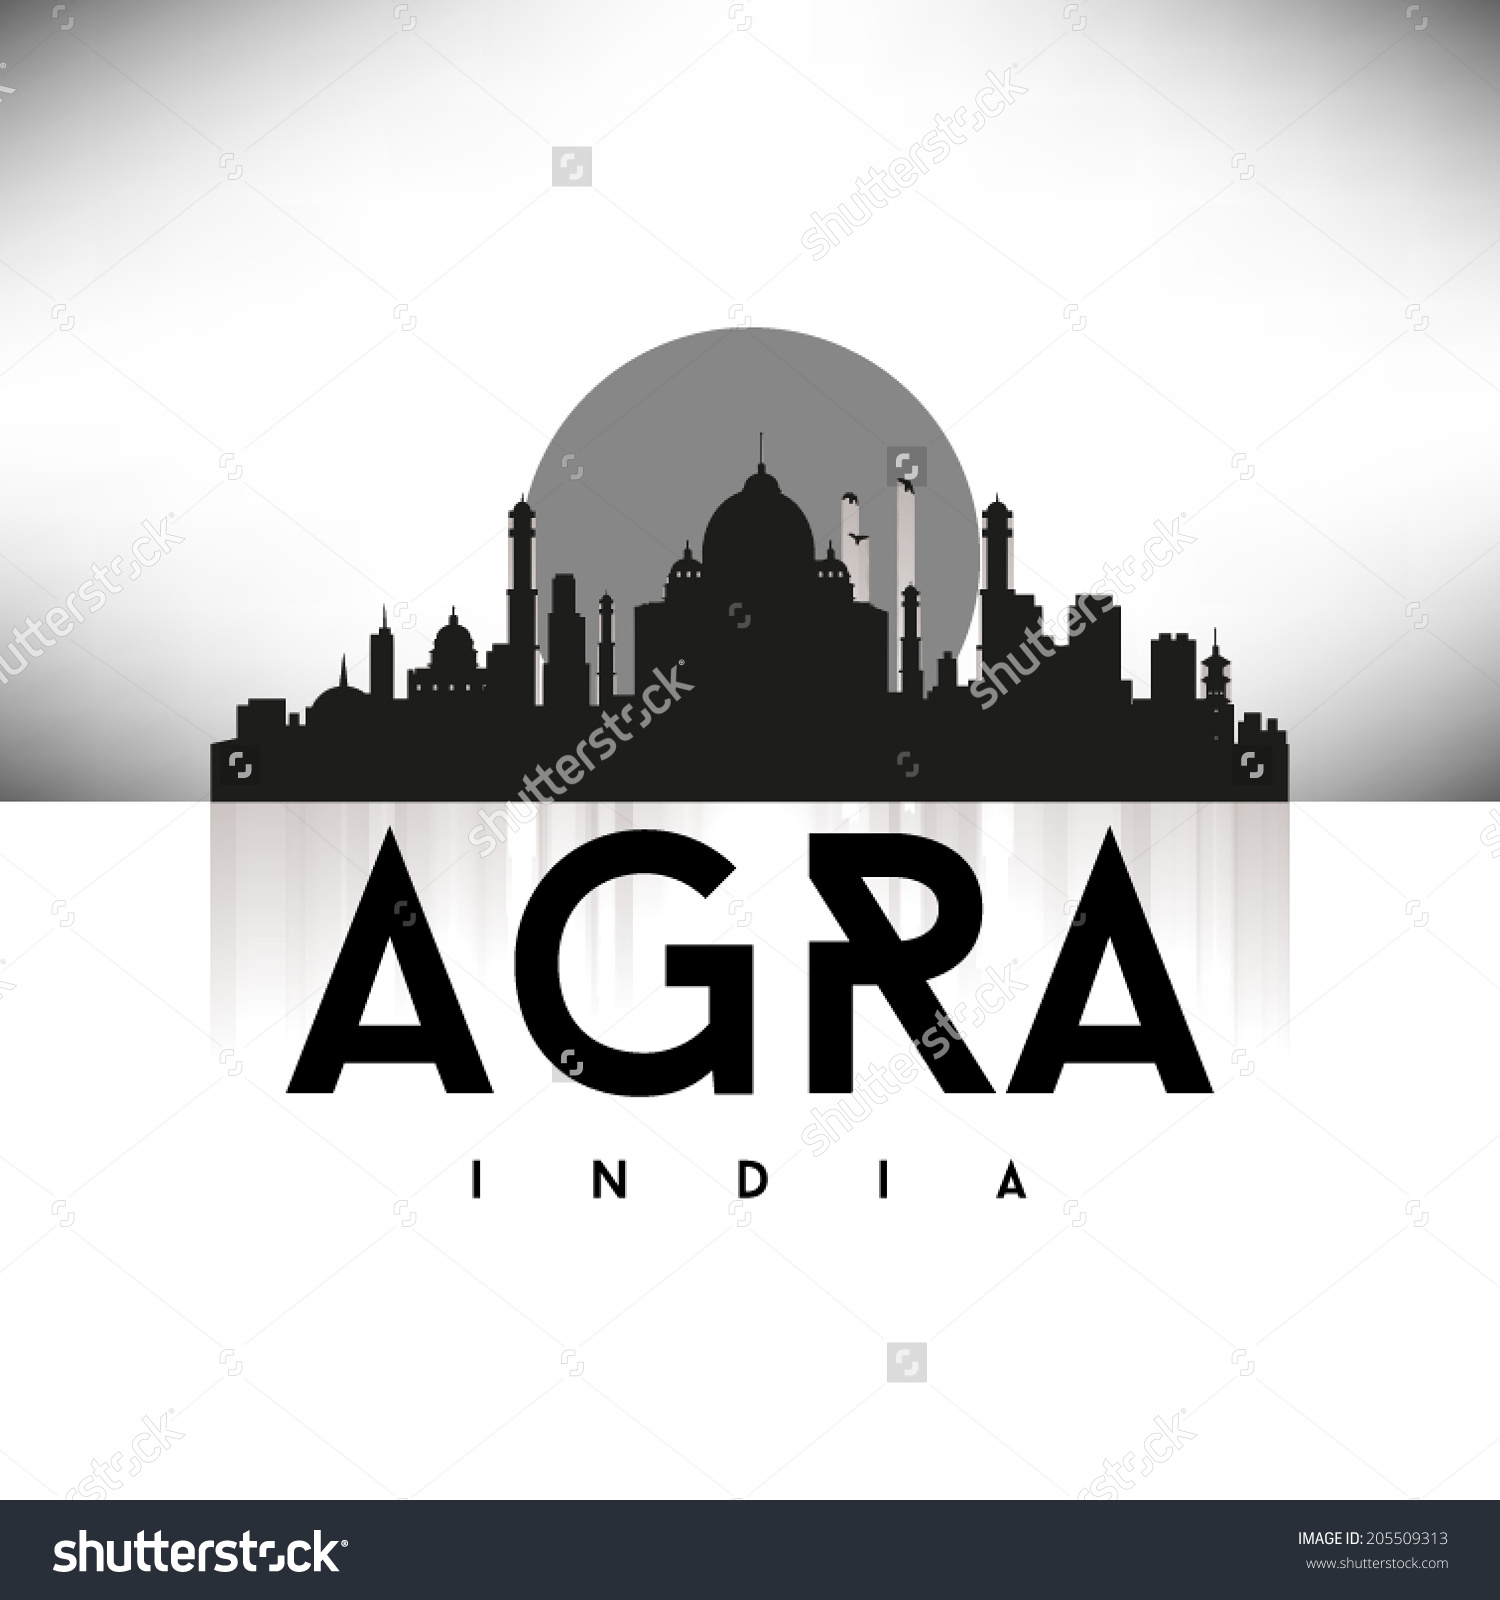 Agra India Black Skyline Silhouette Vector Stock Vector 205509313.